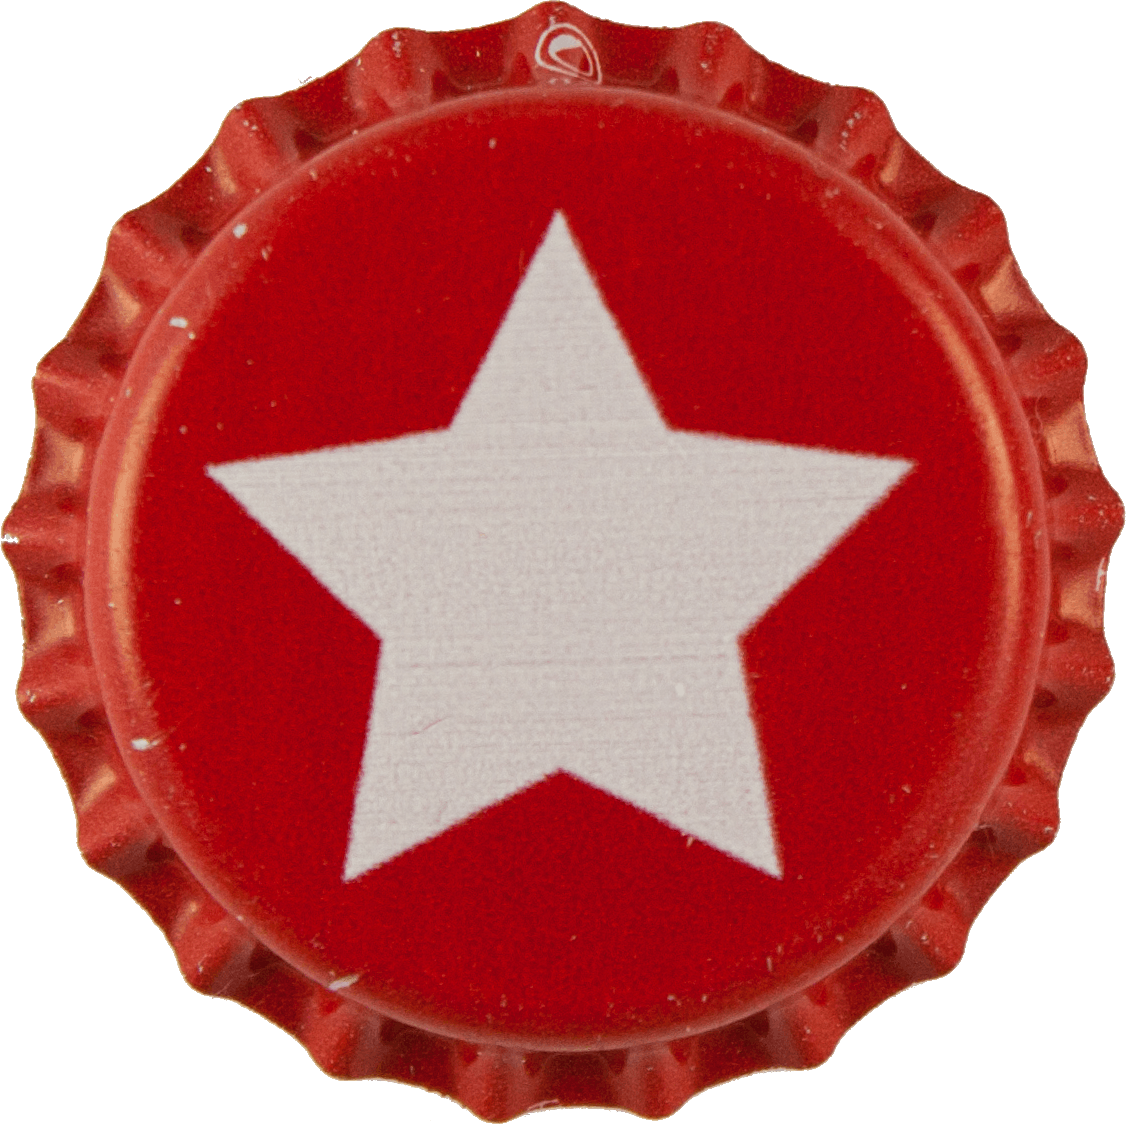 Custom-Printed Bottle Caps - sold by BottleMark